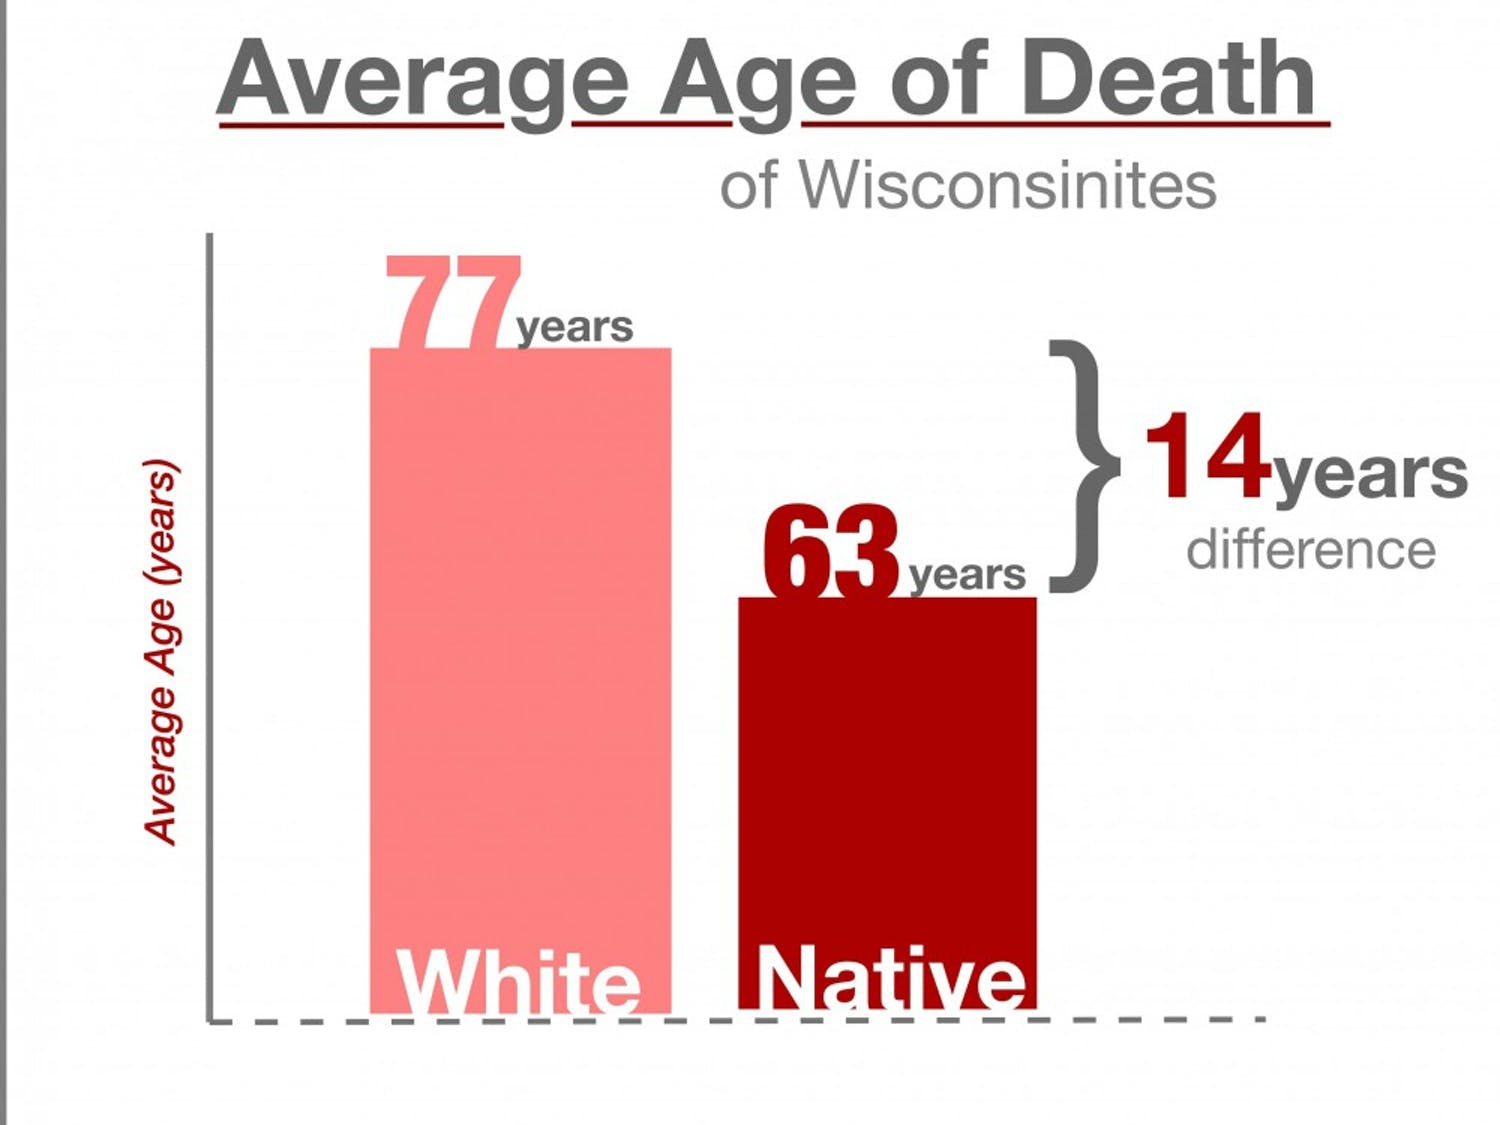 White Wisconsinites currently have an average age of death of 77 years, just below the national norm. But the average Native American will die 14 years sooner, at only 63.